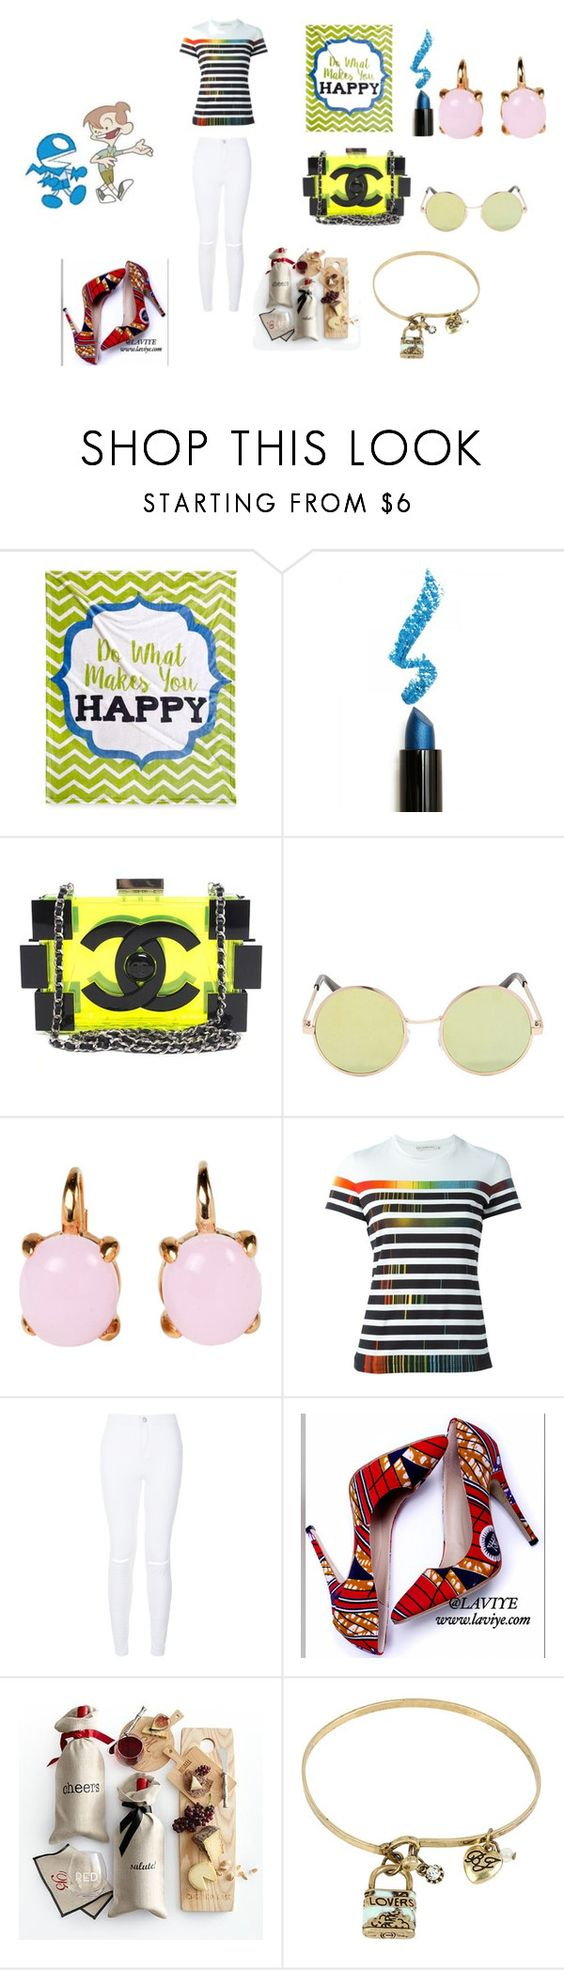 """yesssssssssssss do what make you happy"" by cecjones ❤ liked on Polyvore featuring Lime Crime, Chanel, Rina Limor, Mary Katrantzou, Mark & Graham, Betsey Johnson, women's clothing, women, female and woman"